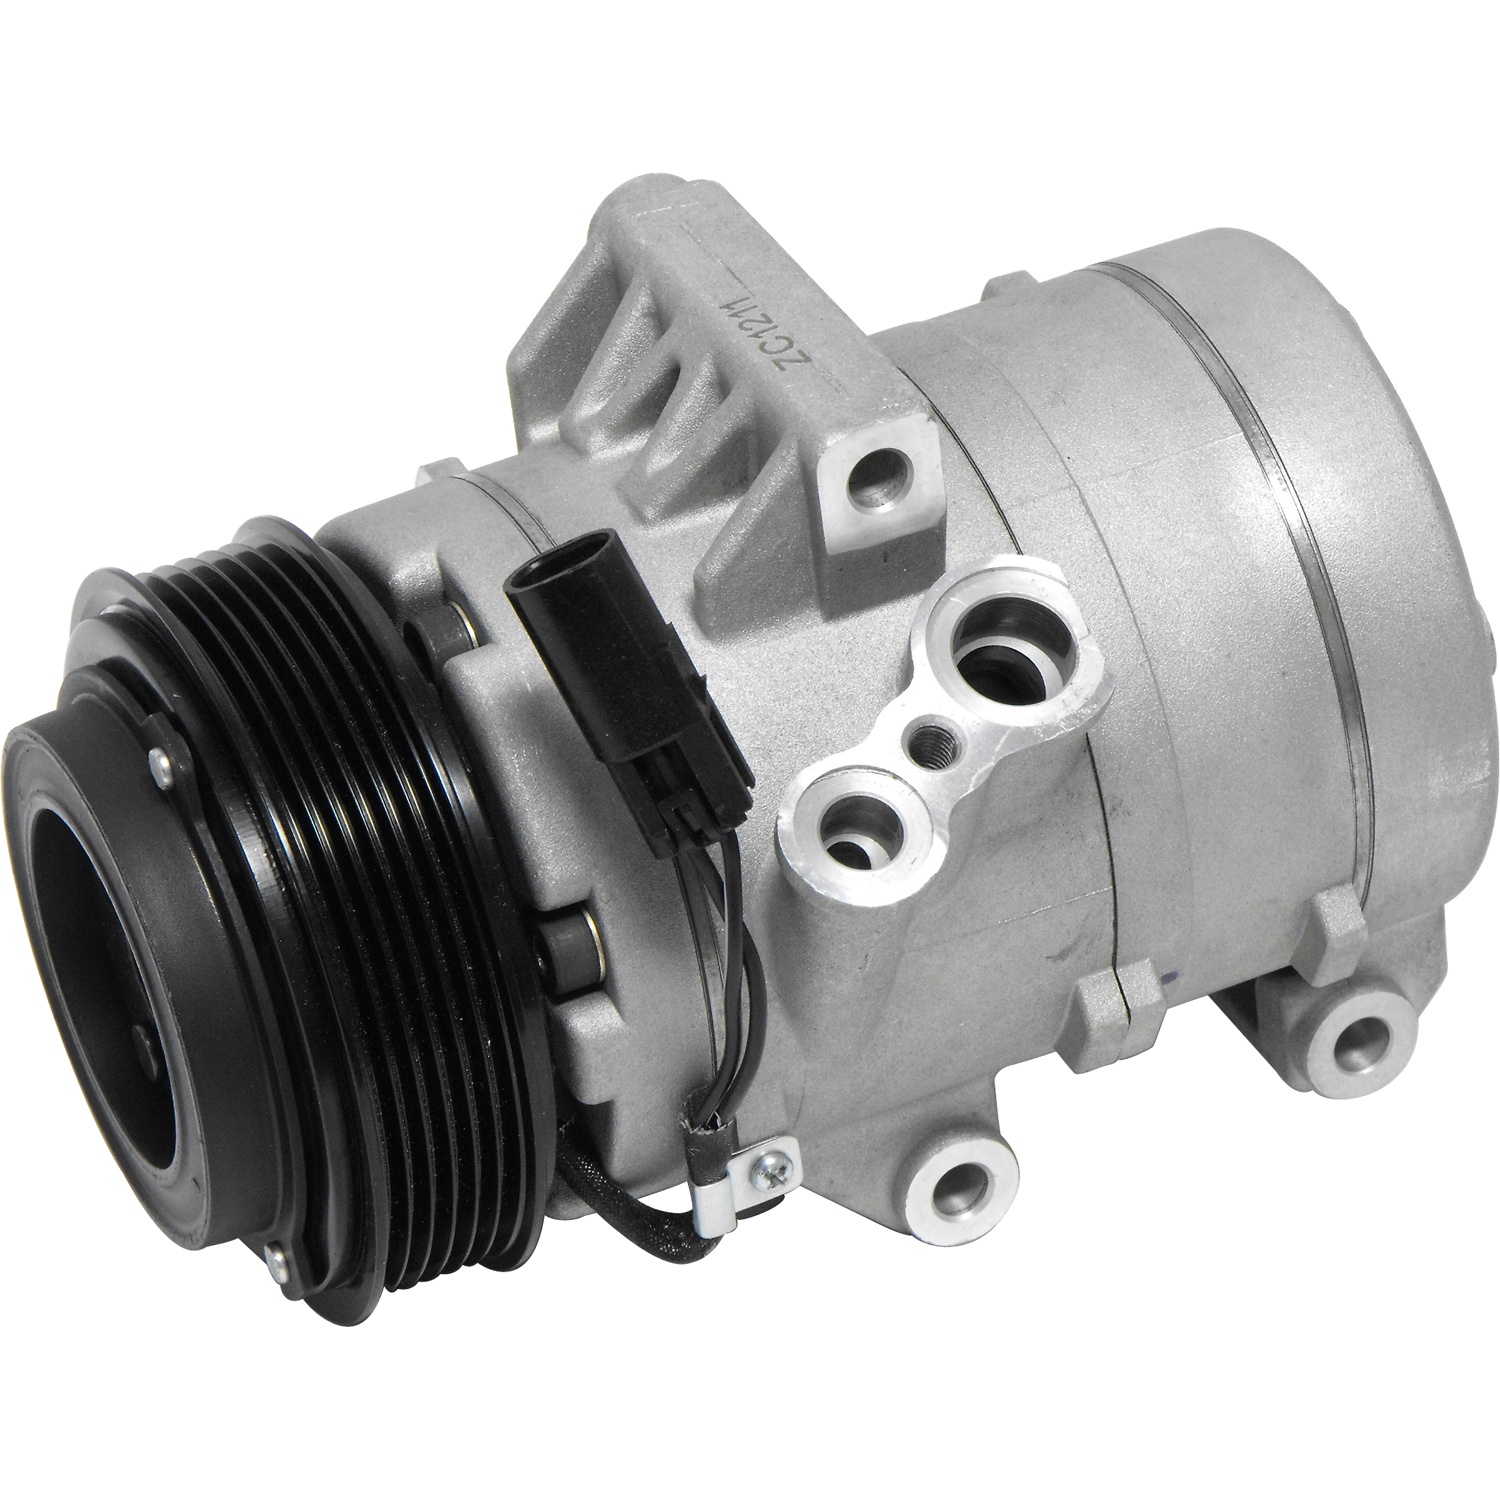 CO 11160C SP17 Compressor Assembly